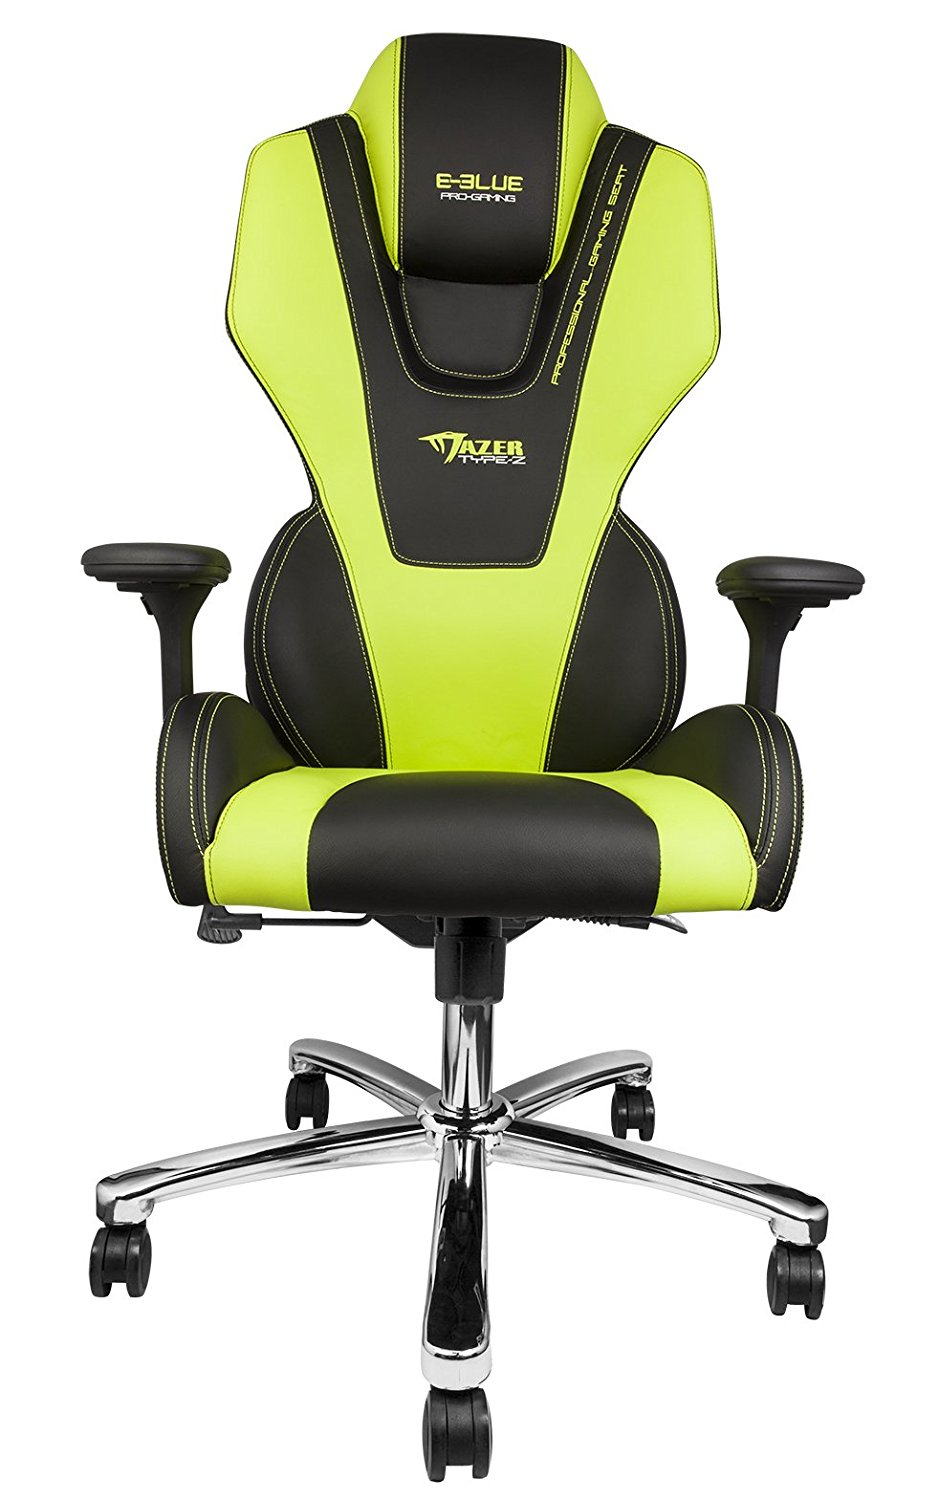 Fabulous The Eblue Mazer Gaming Chair Is Probably Weirdest Most Creative And Ugly Cool I Could Find With Chairs